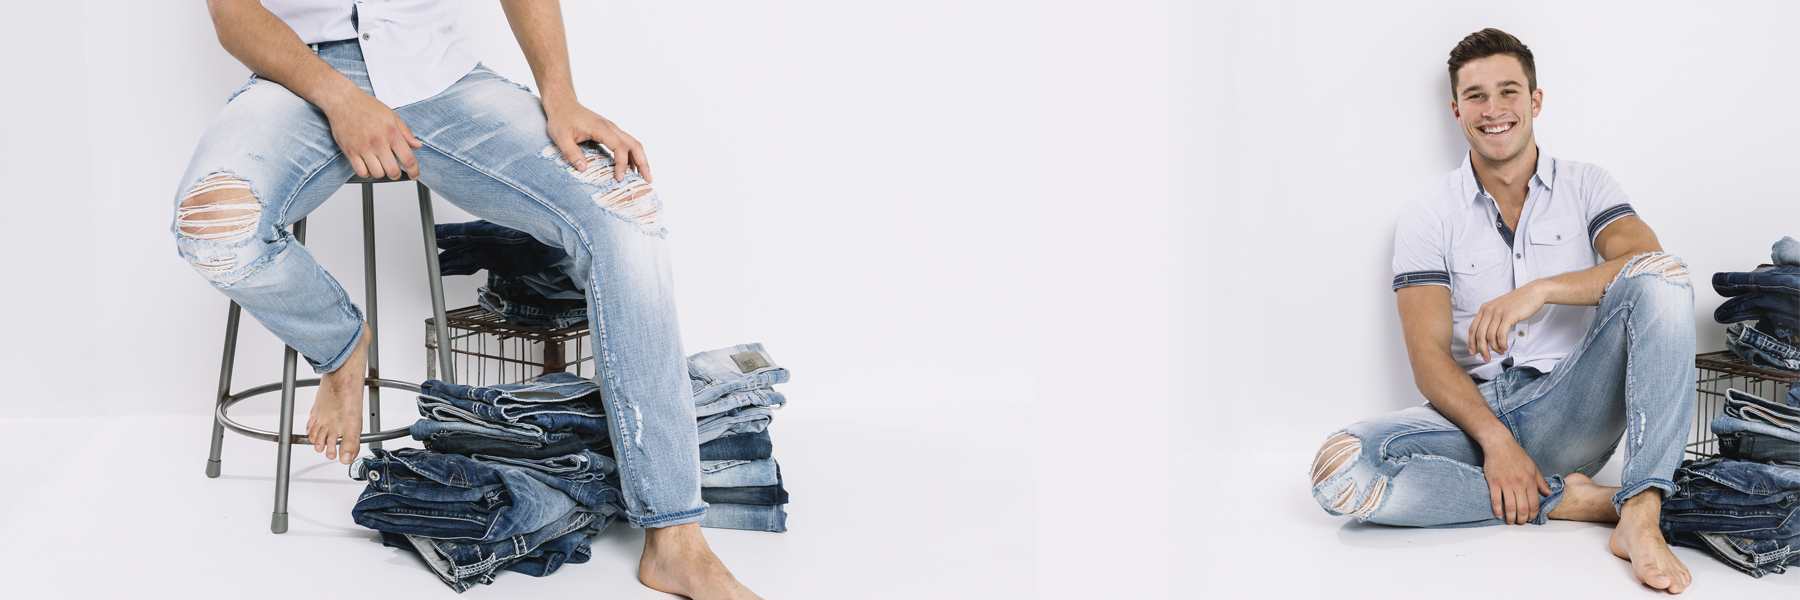 Guy sitting on stool and on floor next to piles of folded jeans.